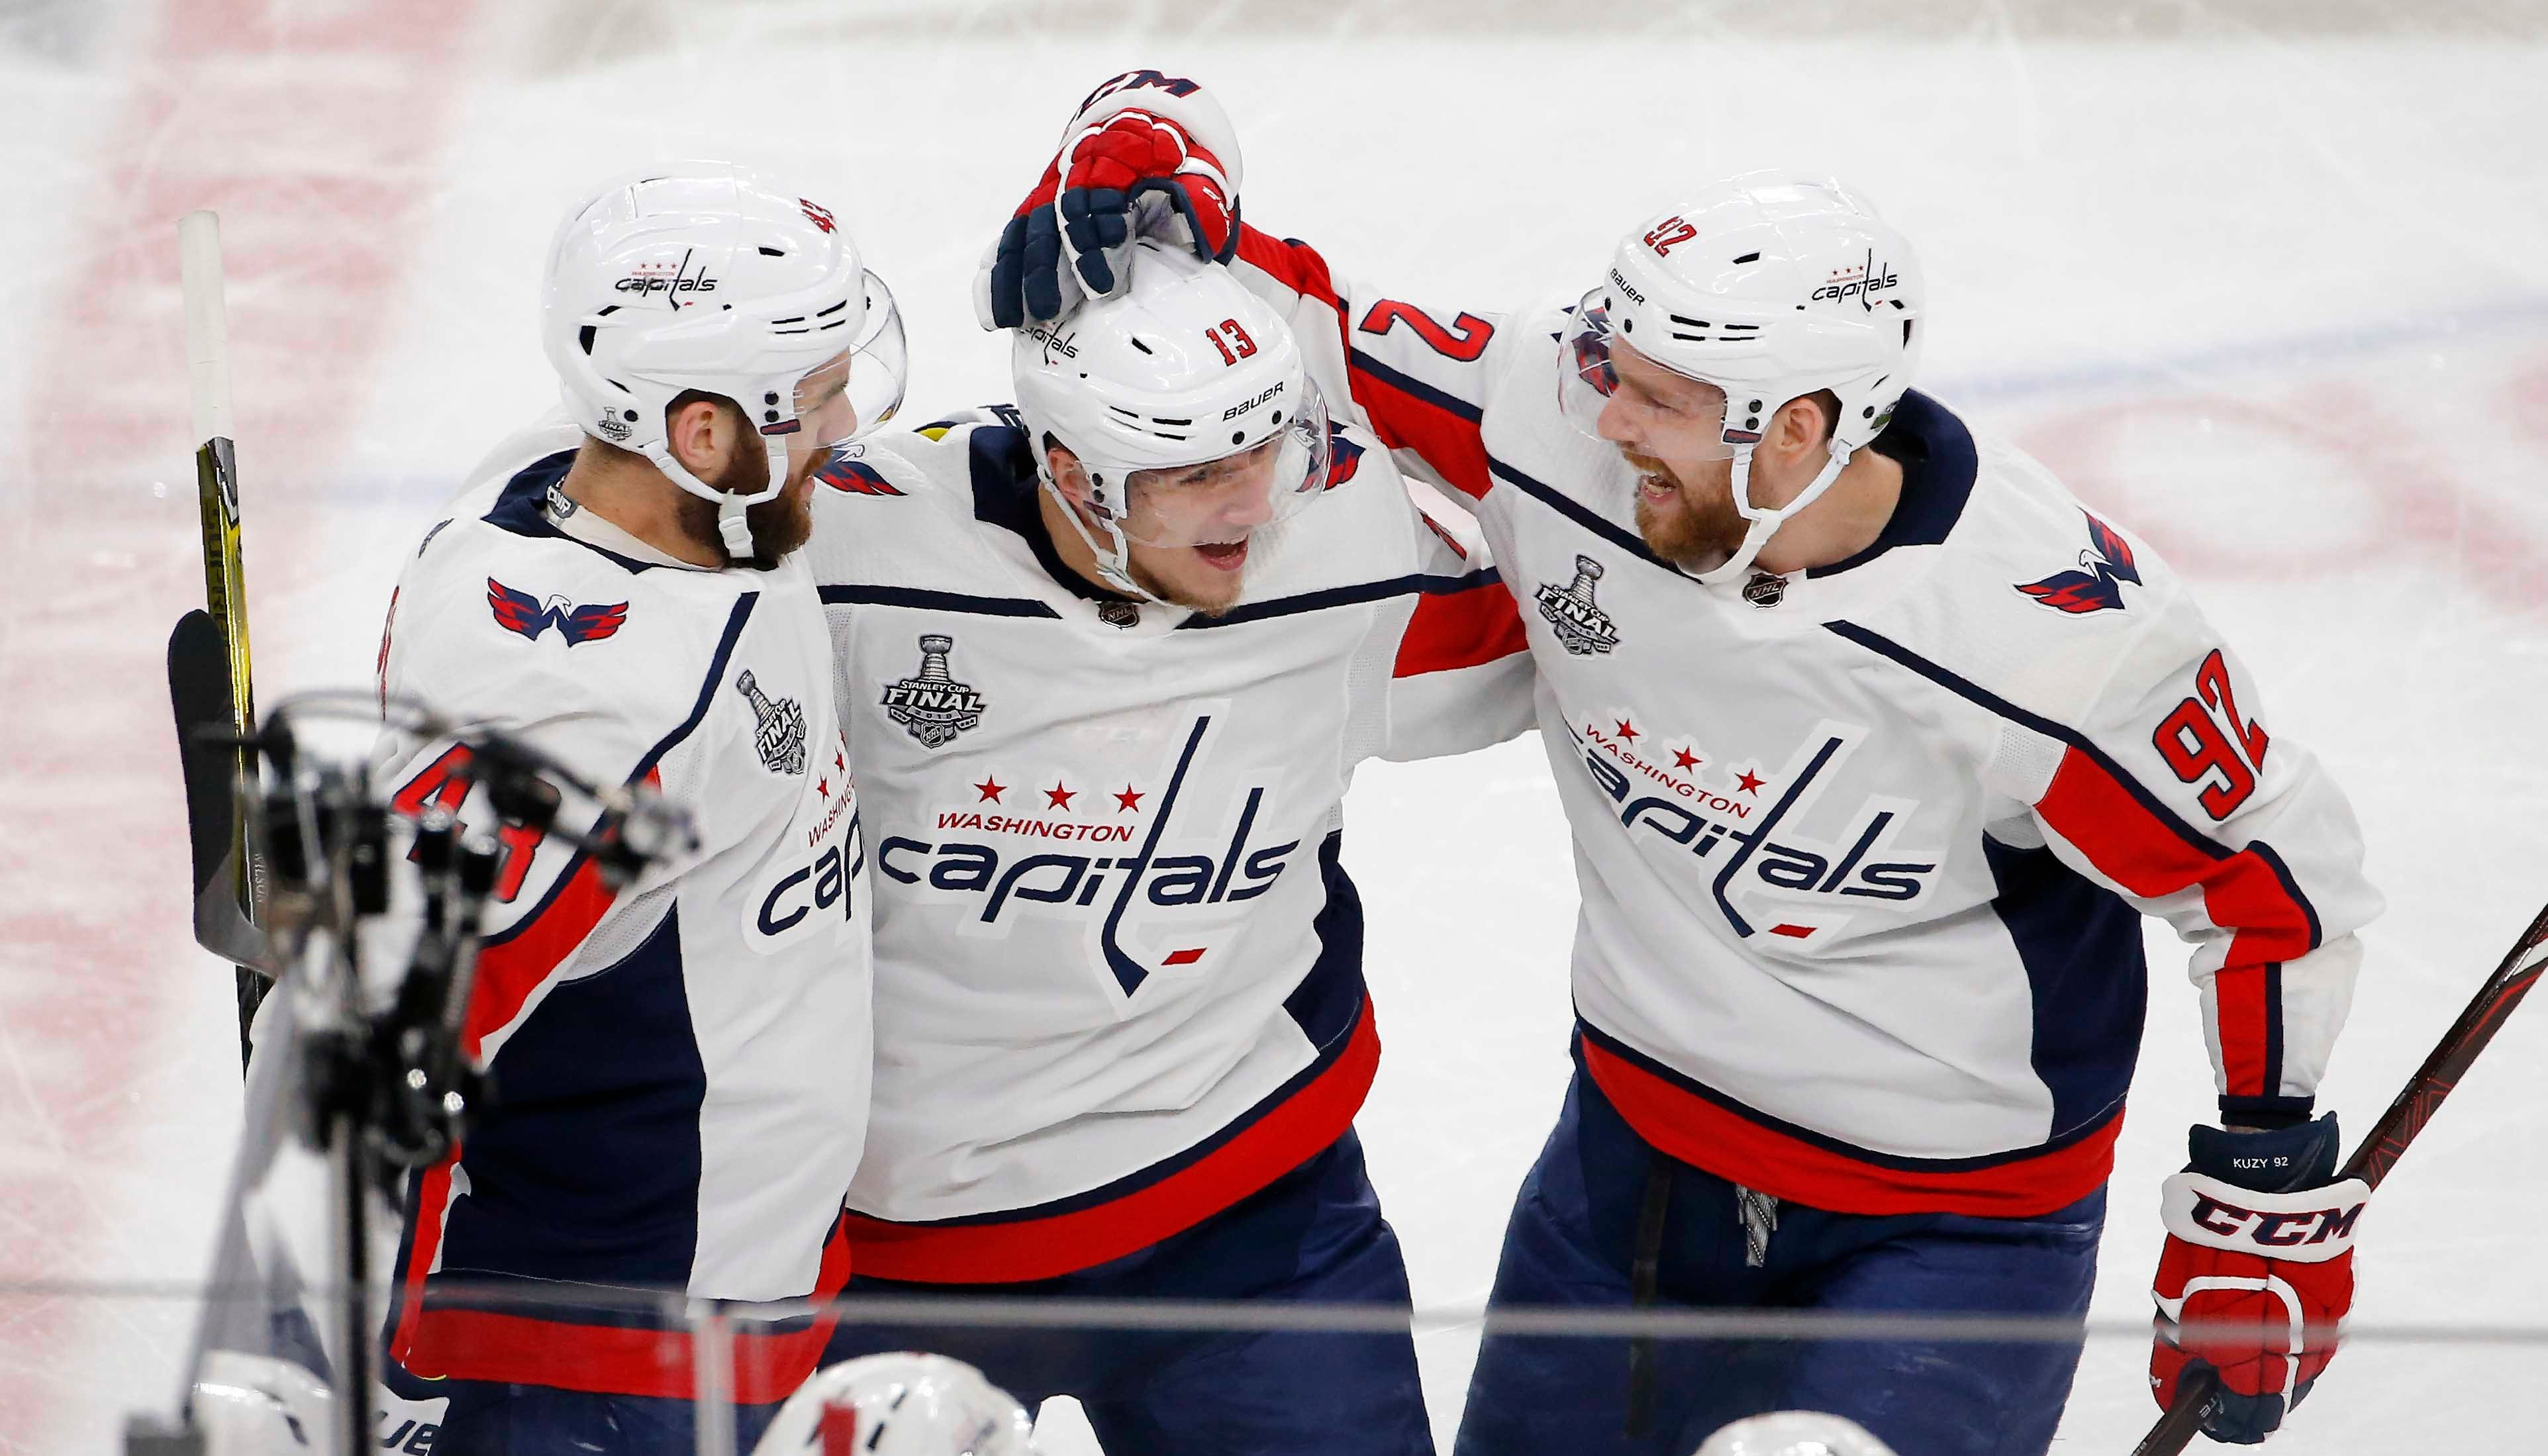 Washington Capitals left wing Jakub Vrana, center, celebrates his goal with right wing Tom Wilson, left, and center Evgeny Kuznetsov during the second period in Game 5 of the NHL hockey Stanley Cup Finals. (AP Photo/Ross D. Franklin)